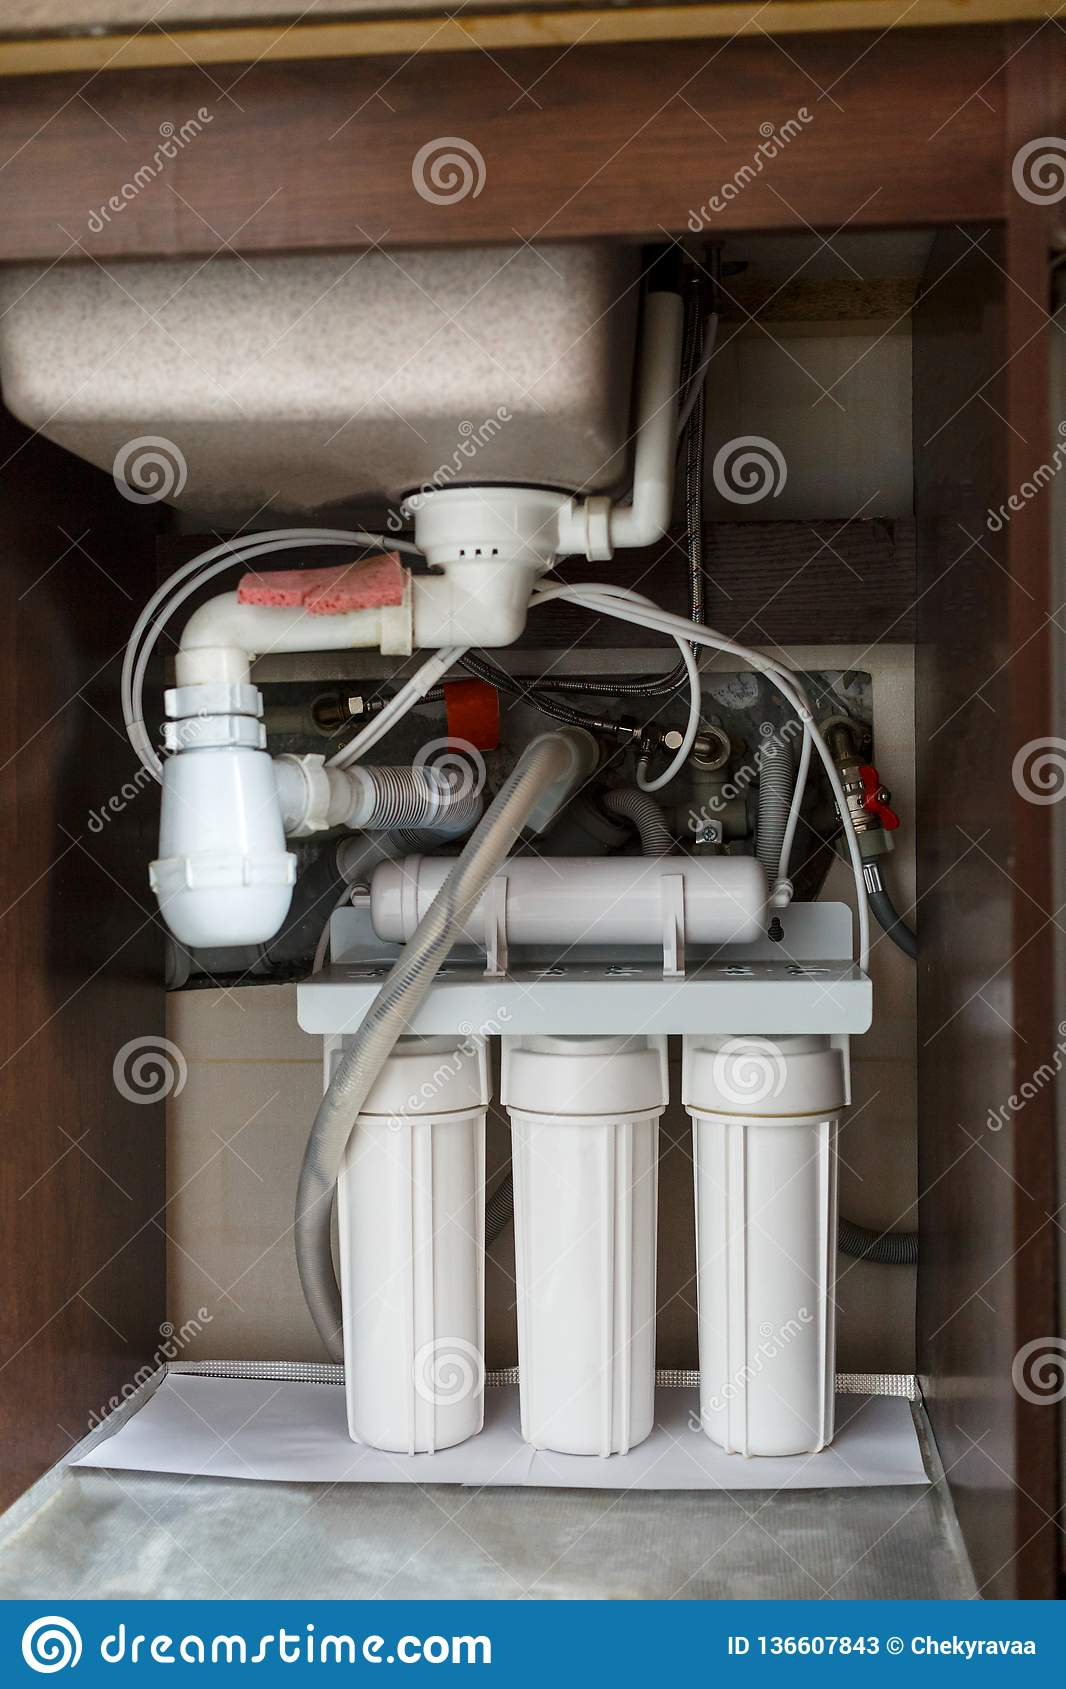 Reverse osmosis water purification system at home installation of water purification filters under kitchen sink